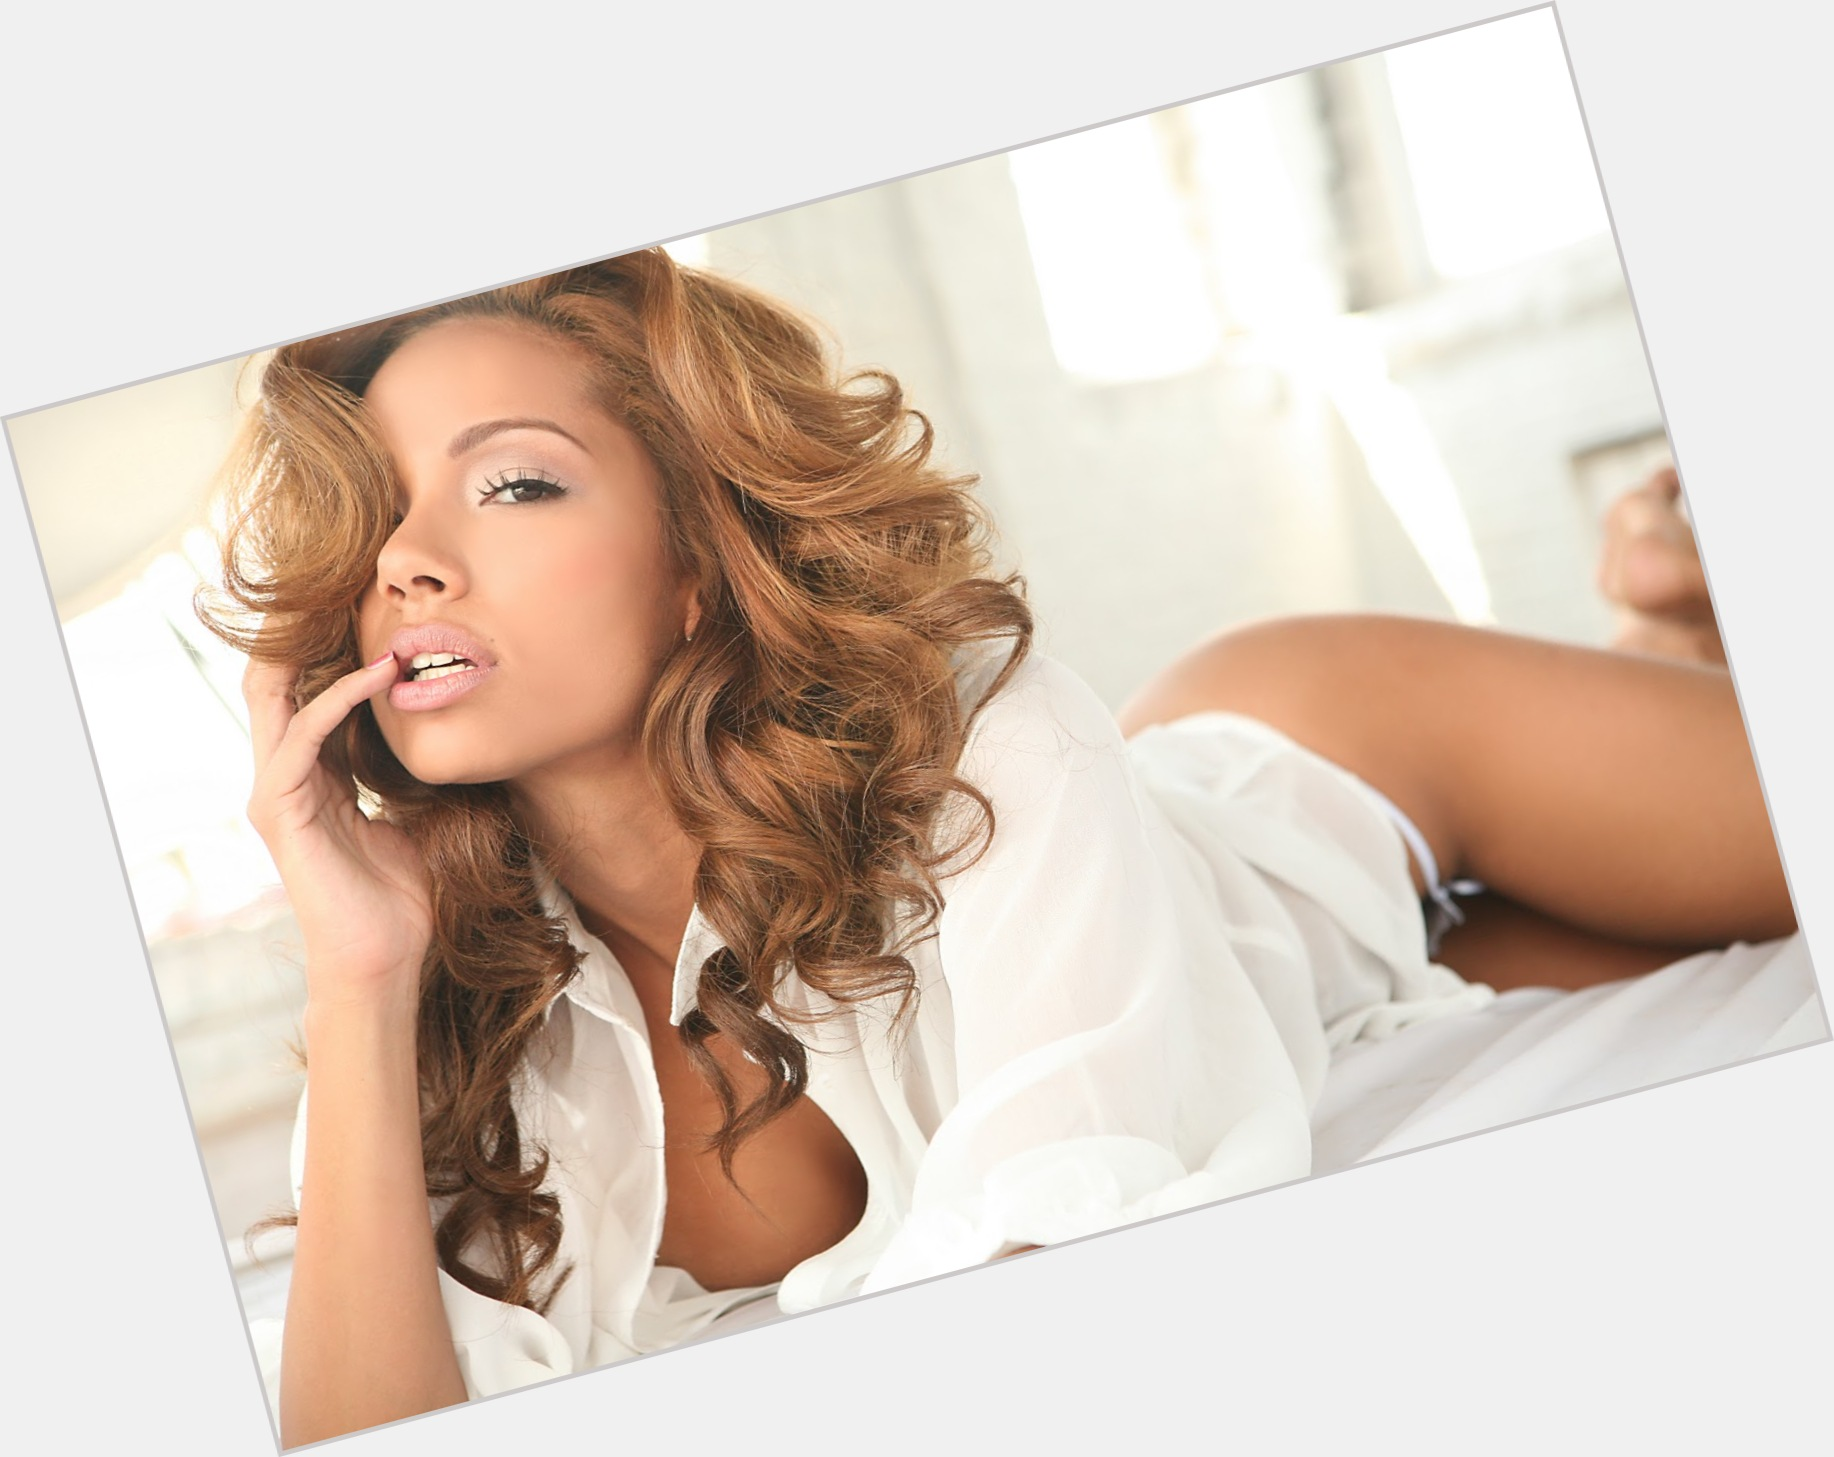 Erica Mena exclusive hot pic 5